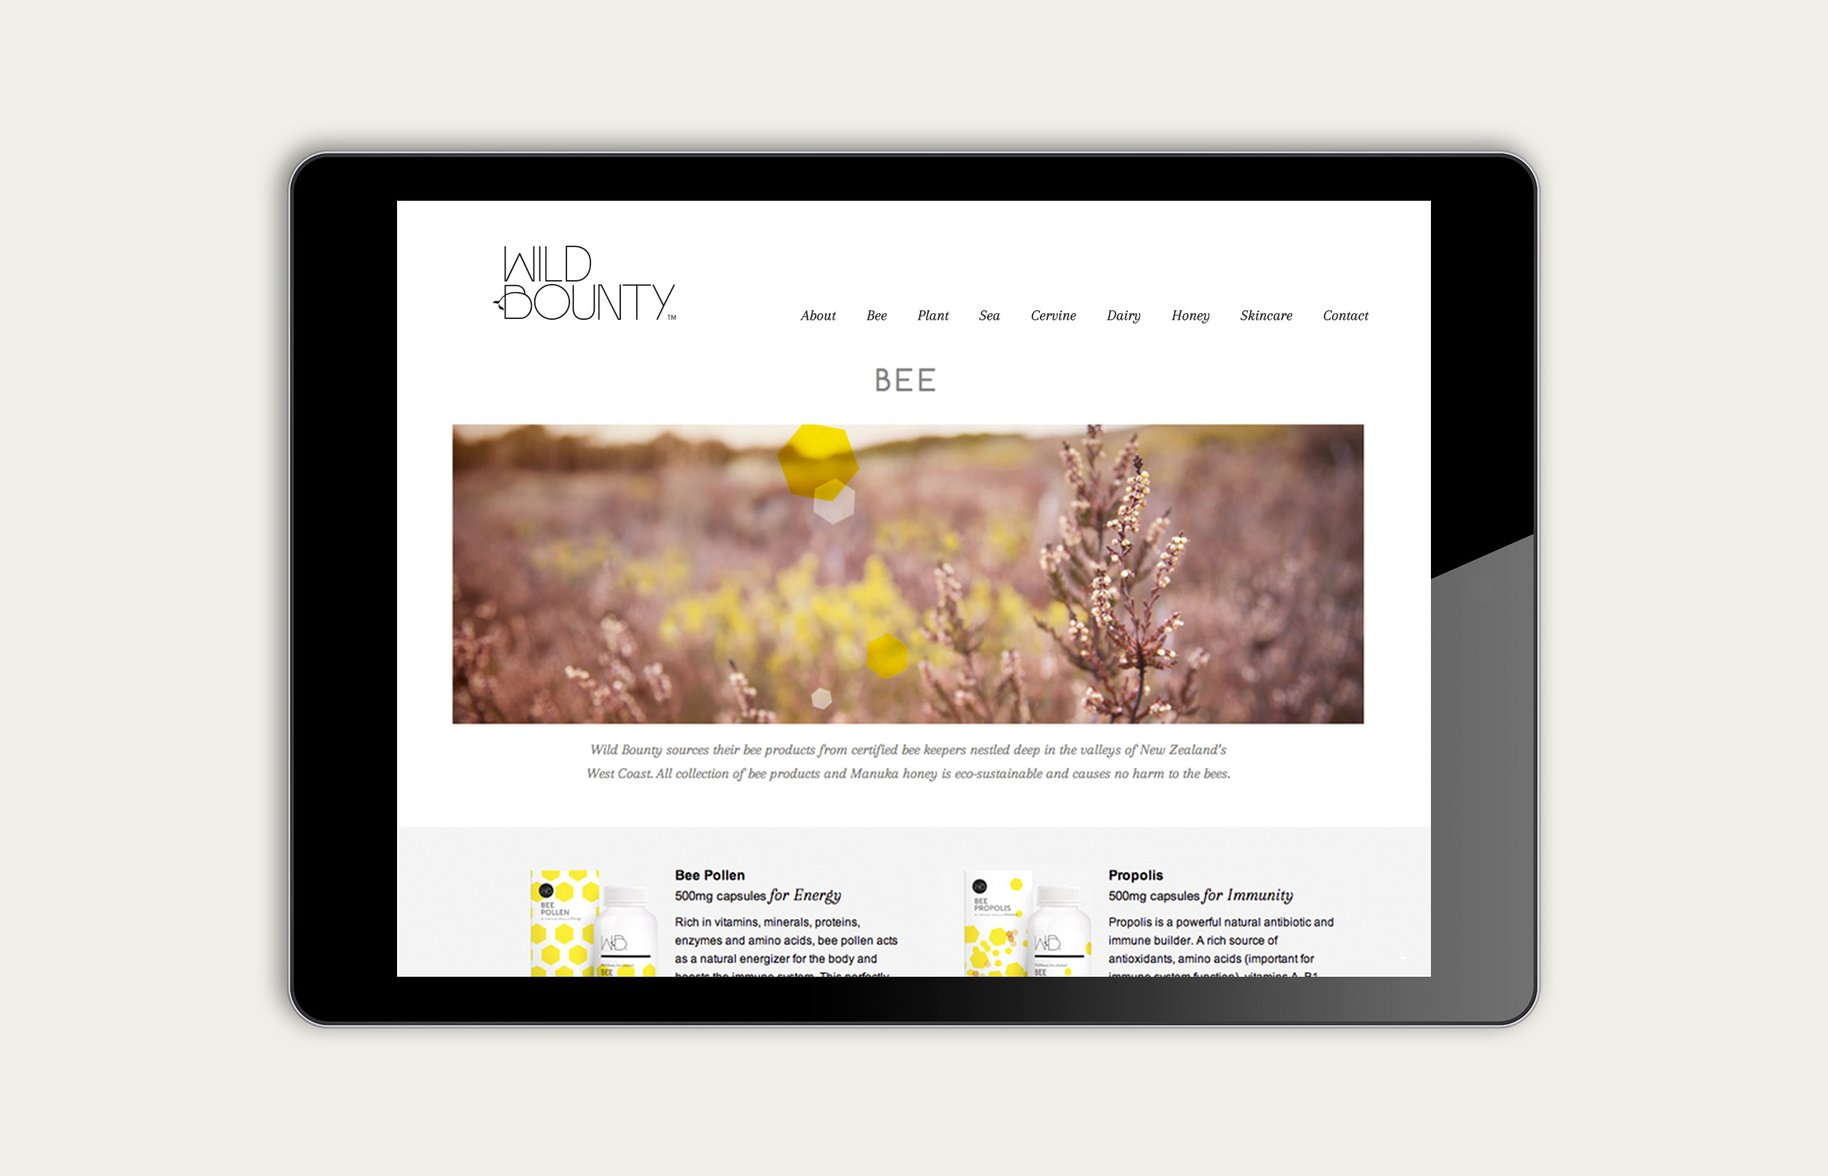 Wild Bounty iPad website product